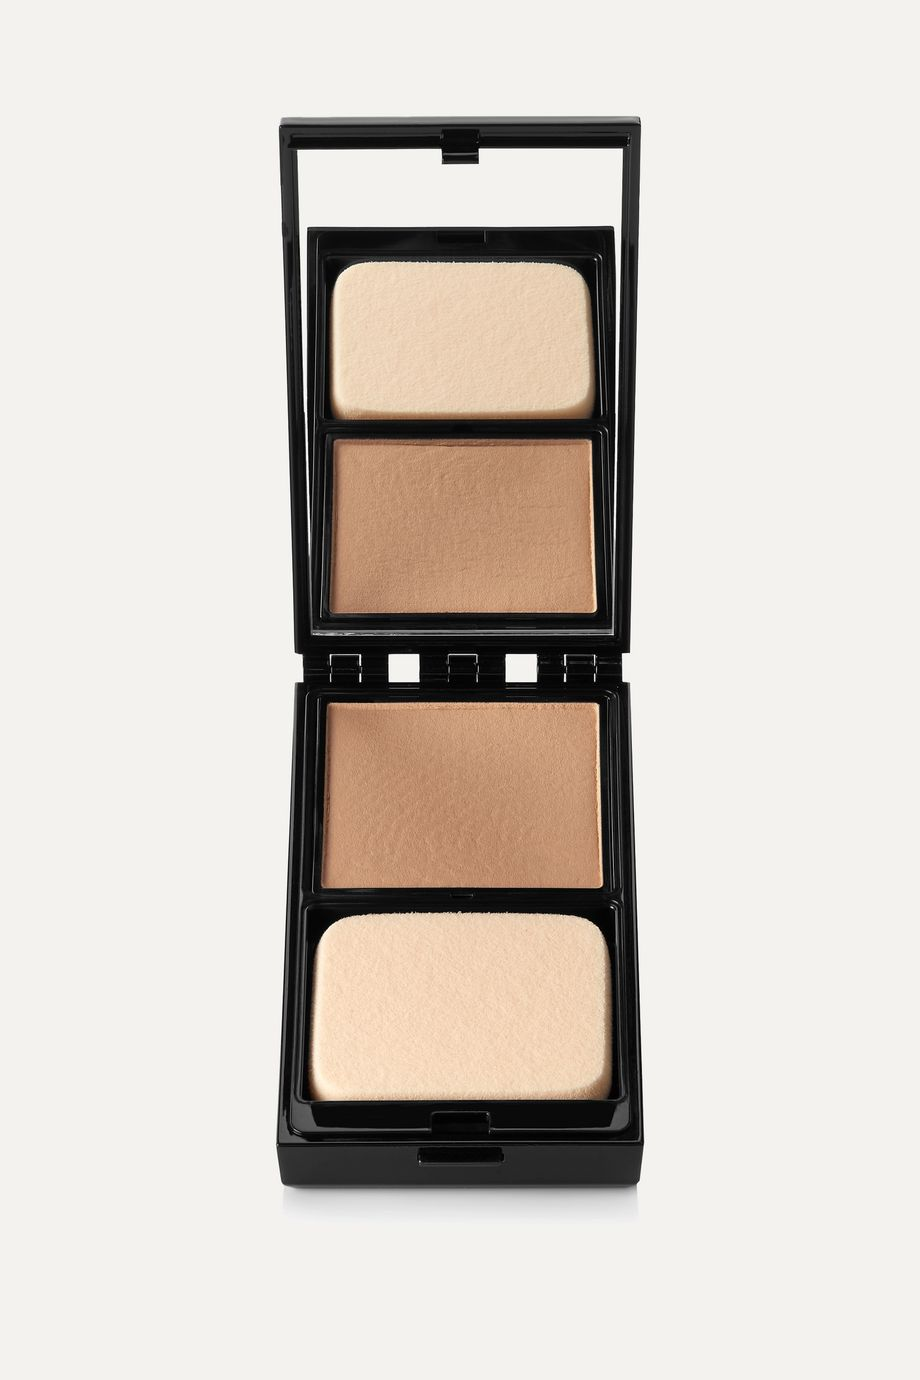 Serge Lutens Tient Si Fin Compact Foundation – I20 – Foundation